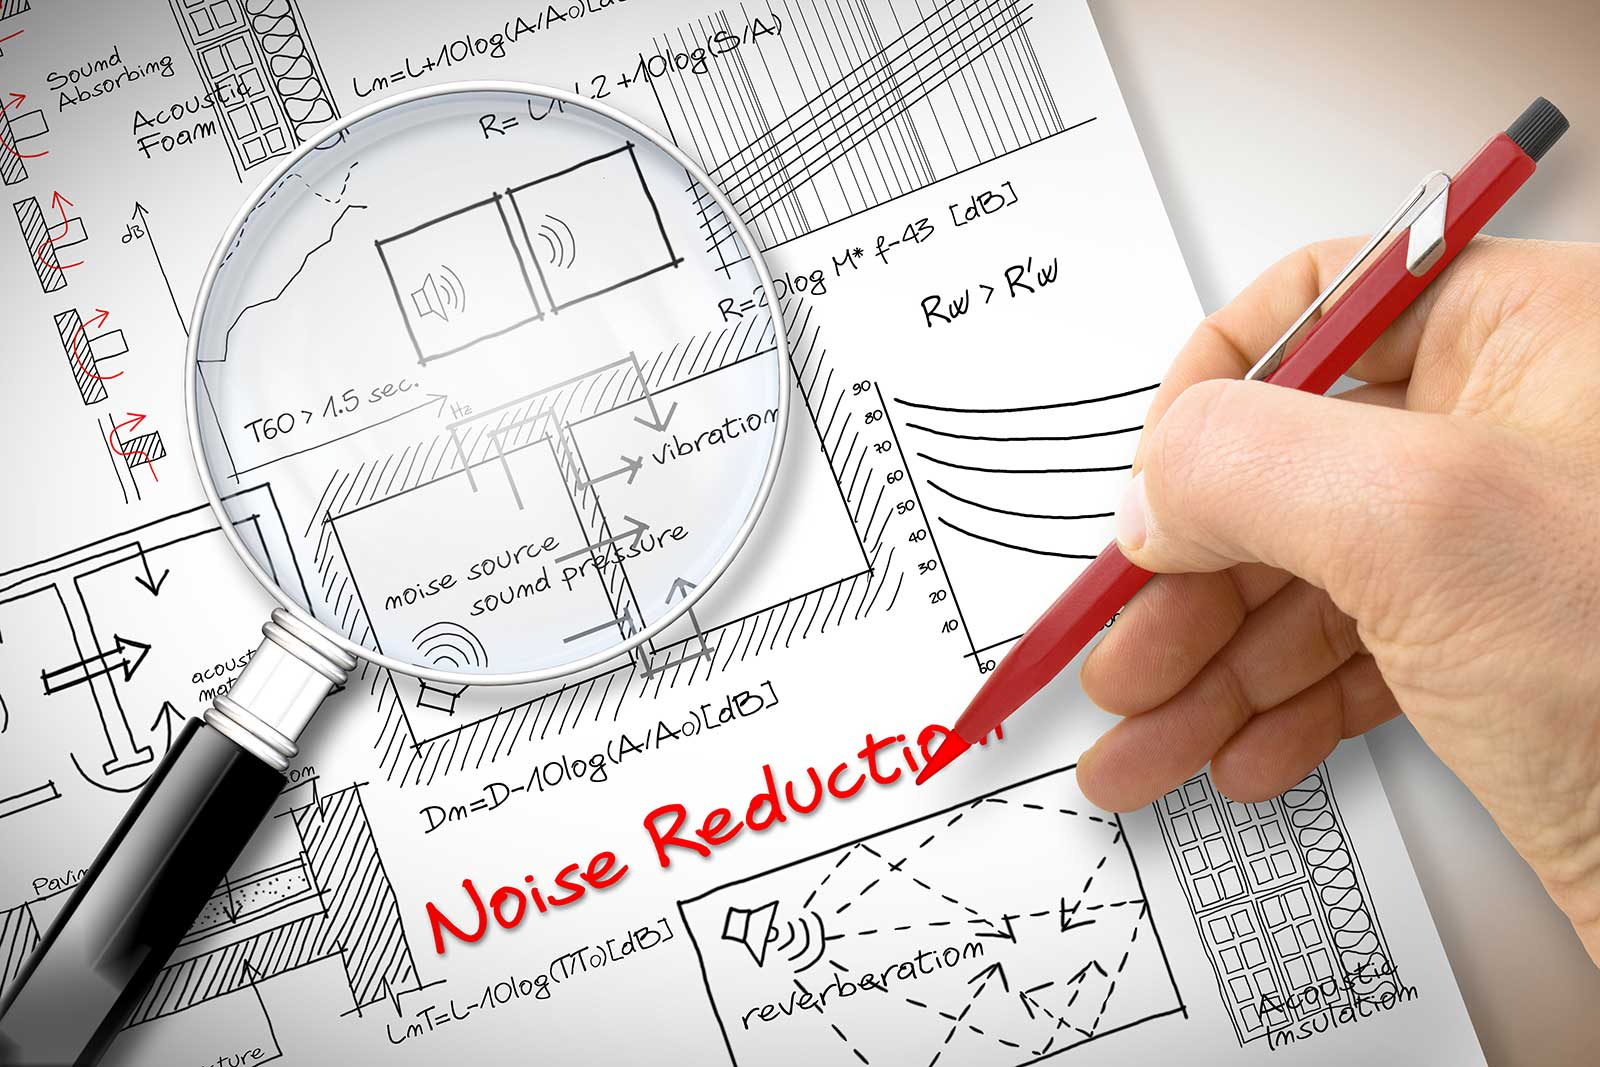 Best Glass For Noise Reduction